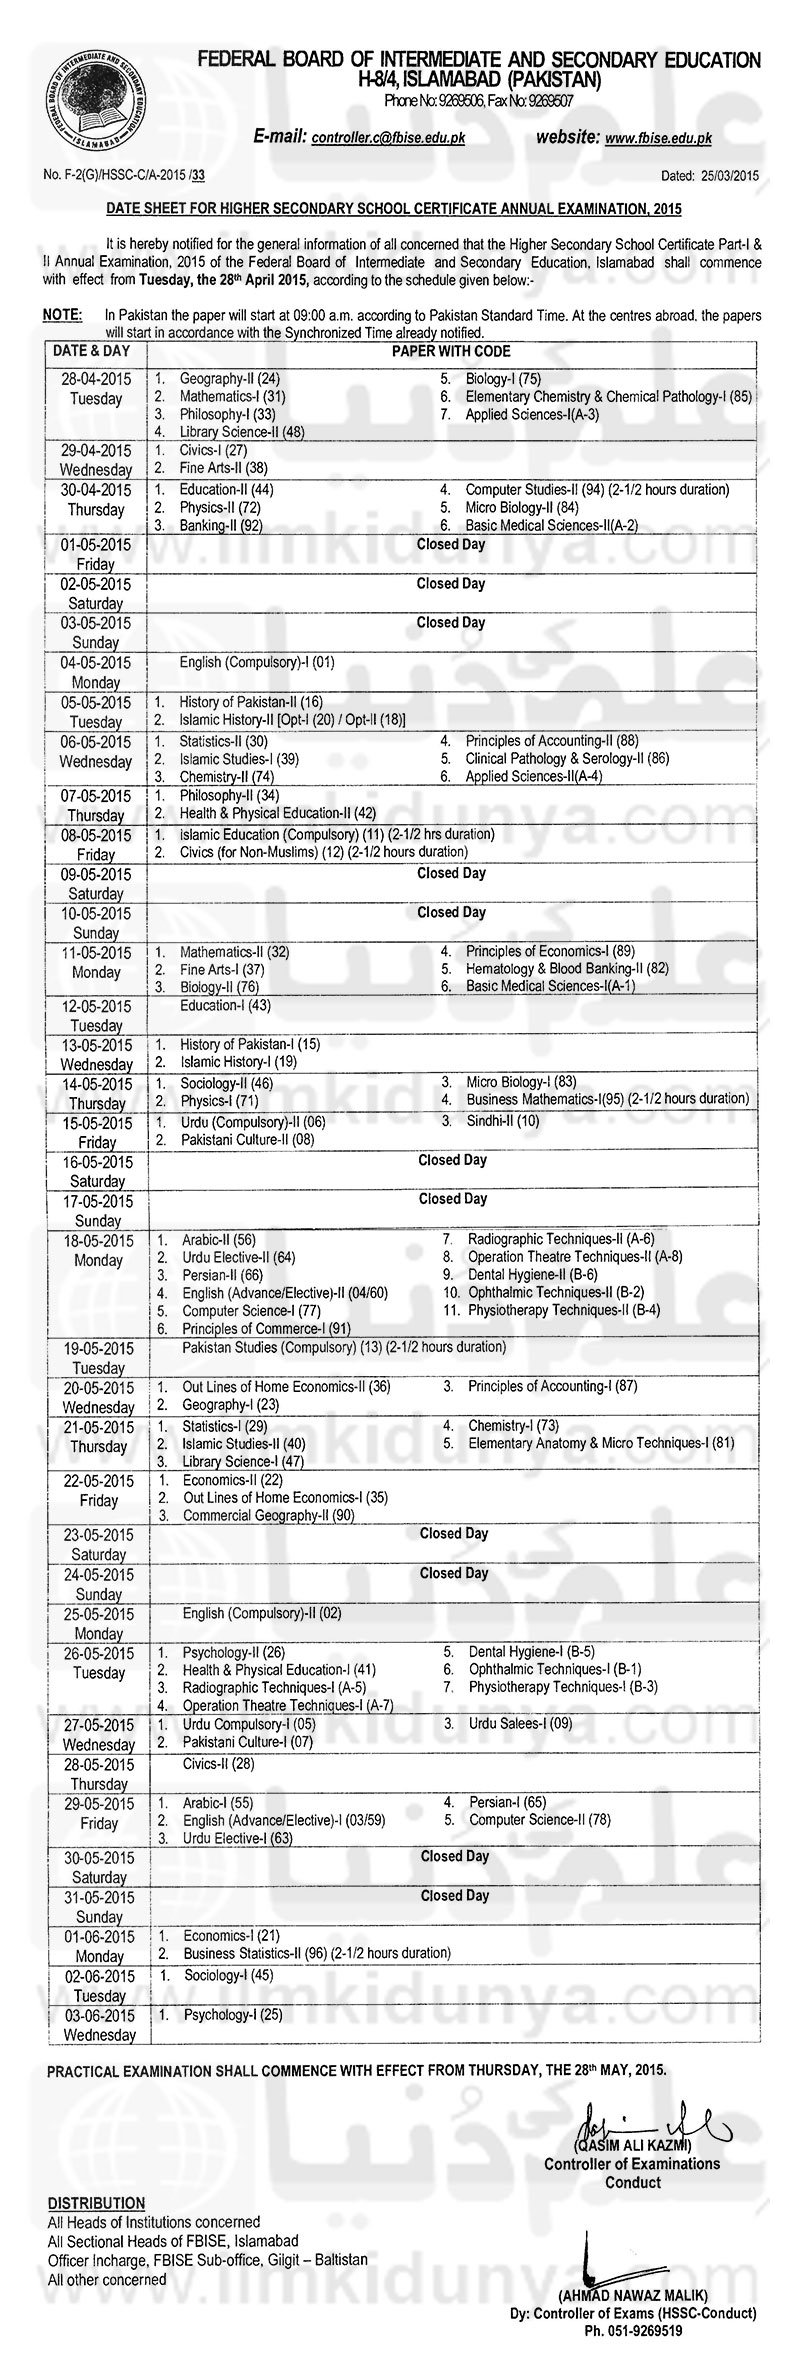 BISE Federal Board HSSC Date Sheet 2019 Part 1, 2